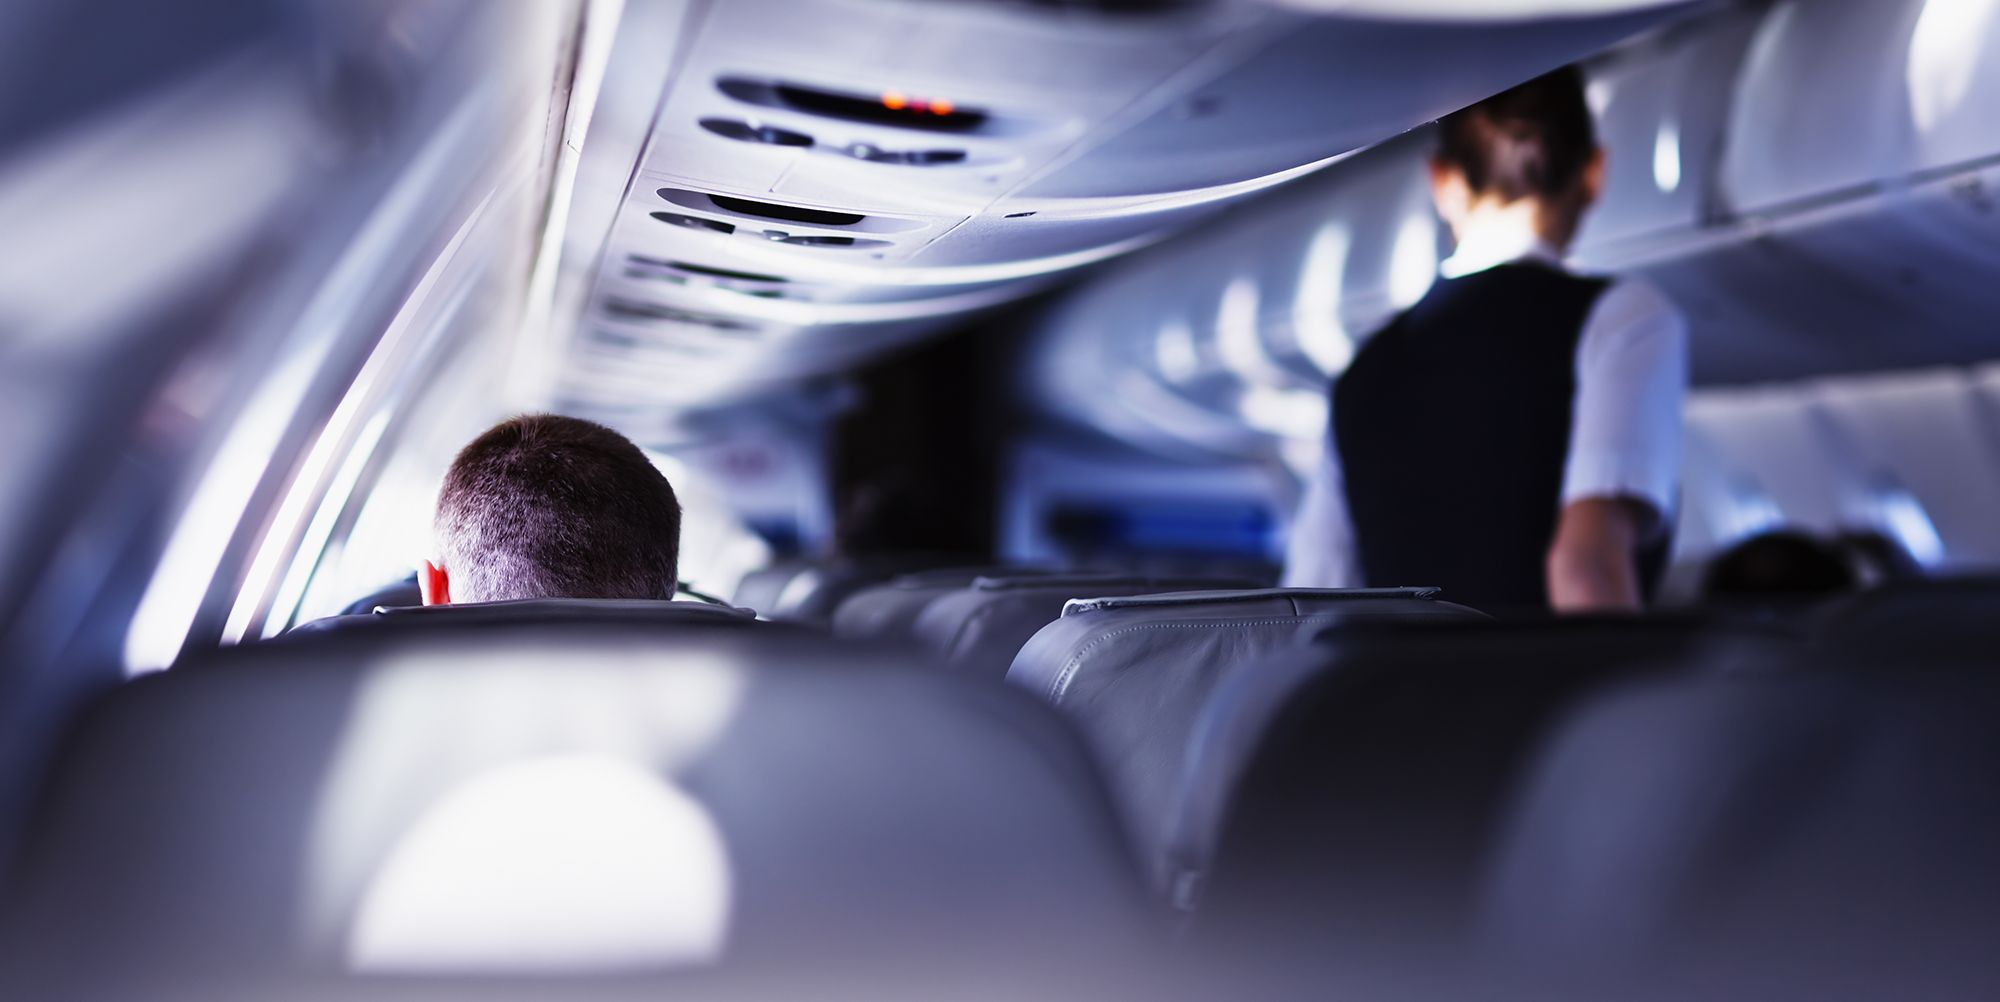 'How I got my job as a flight attendant'